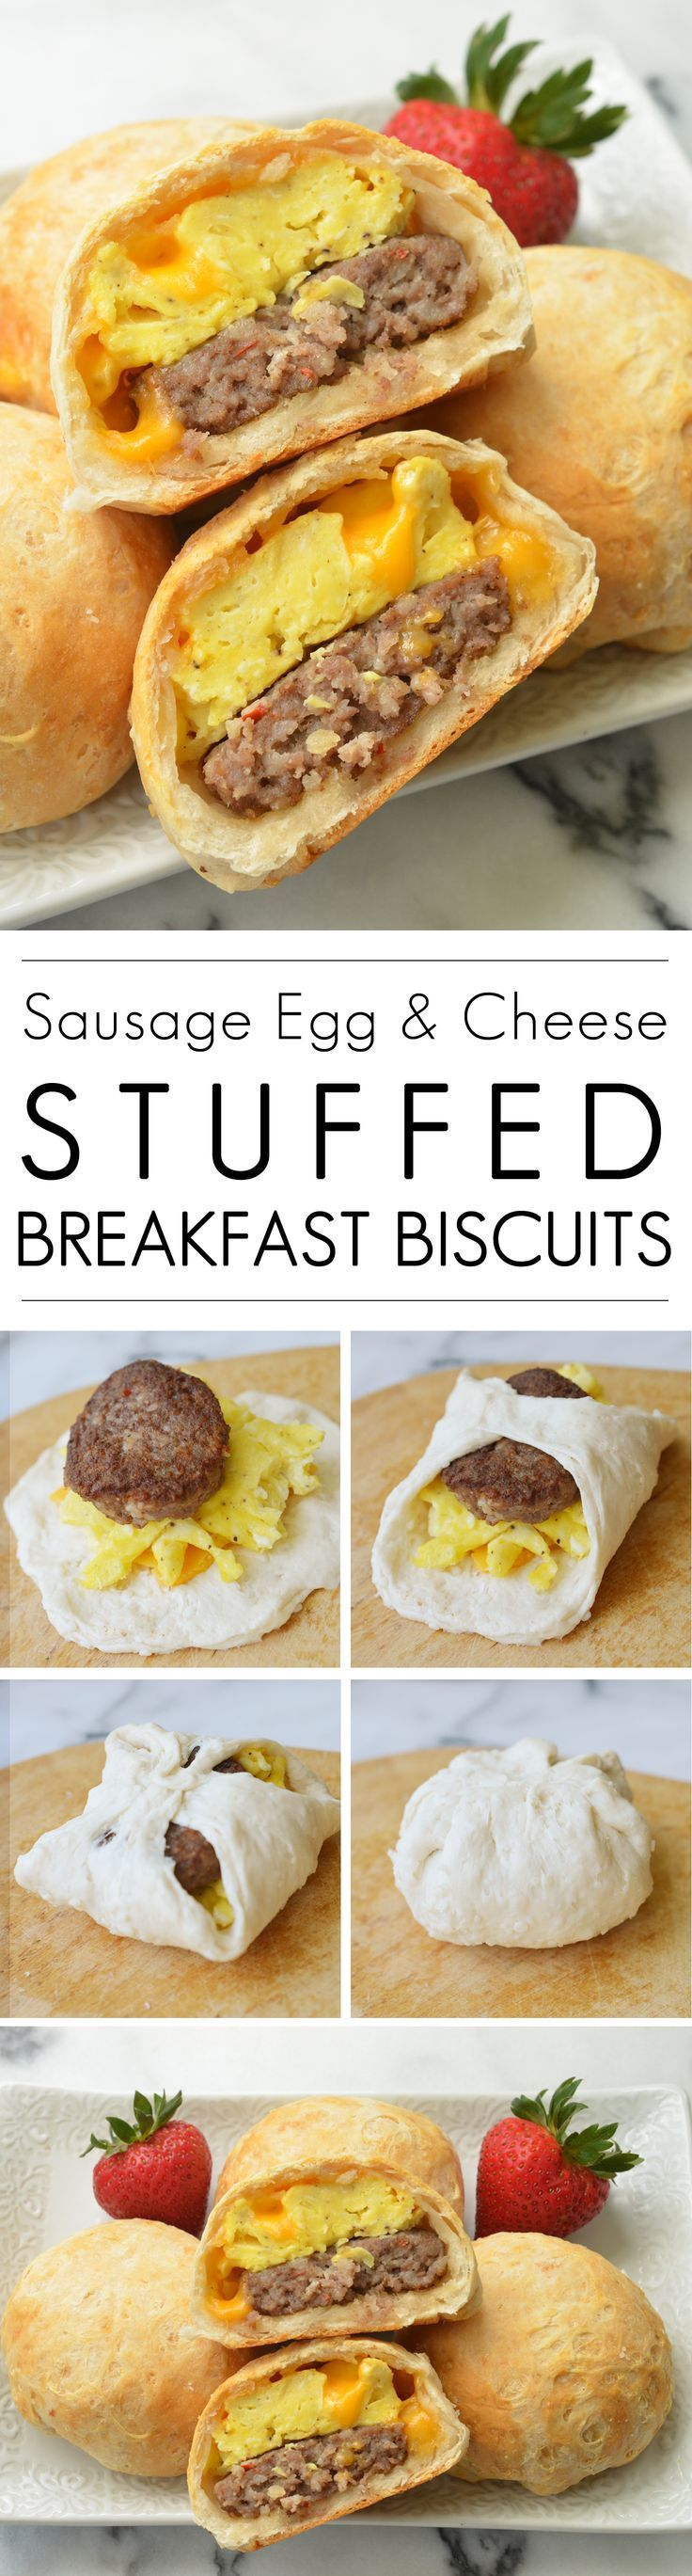 Sausage Egg & Cheese Stuffed Breakfast Biscuits (scheduled via http://www.tailwindapp.com?utm_source=pinterest&utm_medium=twpin&utm_content=post170524507&utm_campaign=scheduler_attribution)